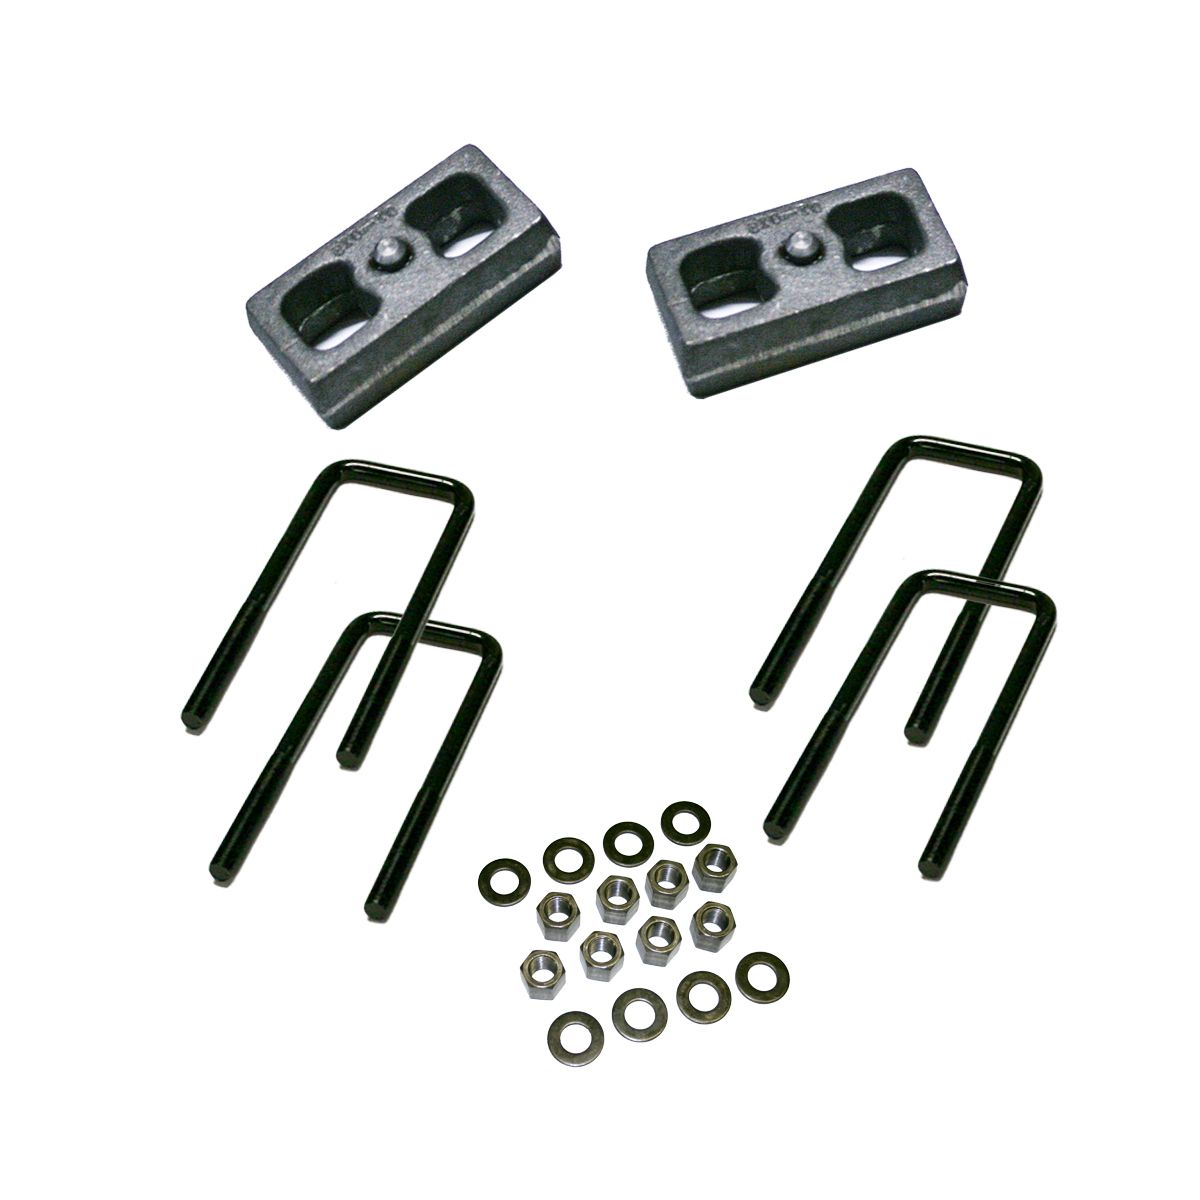 "1.5"" Rear Block Kit for 1999-2006 GM 1500 Pickup and 1999-2010 2500 Pickup and SUV"